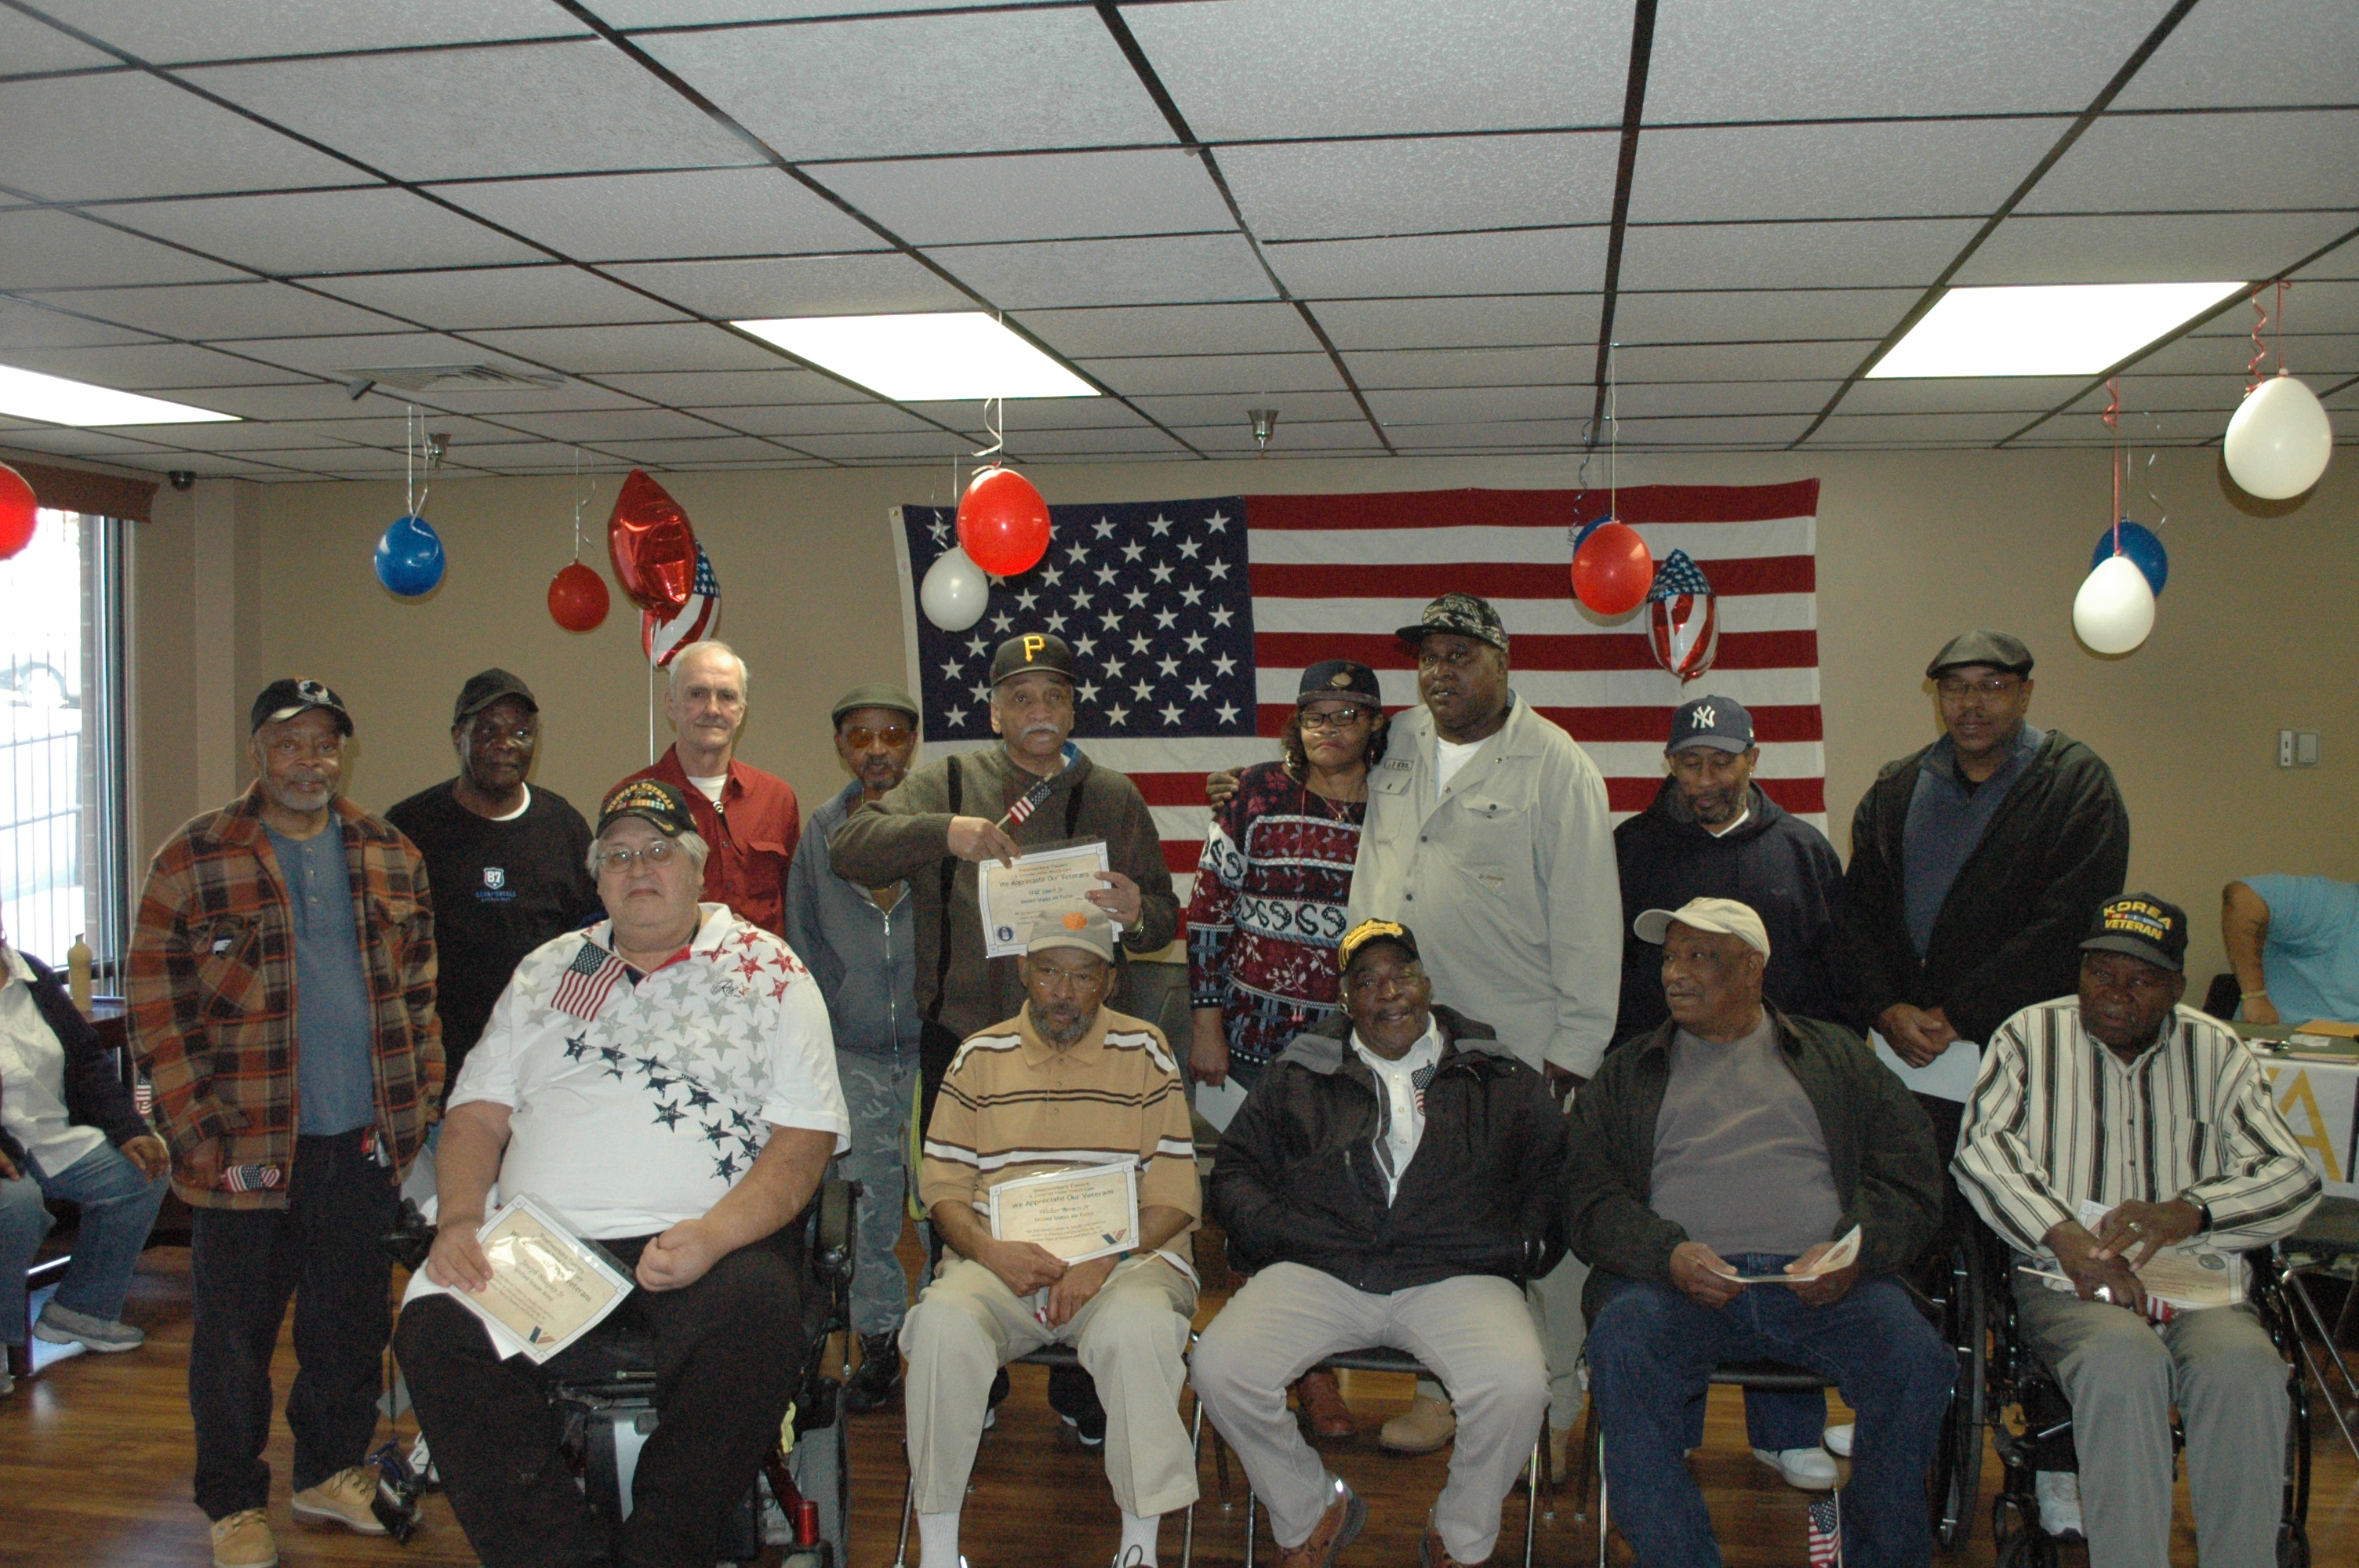 Vets honored in Perry Hilltop